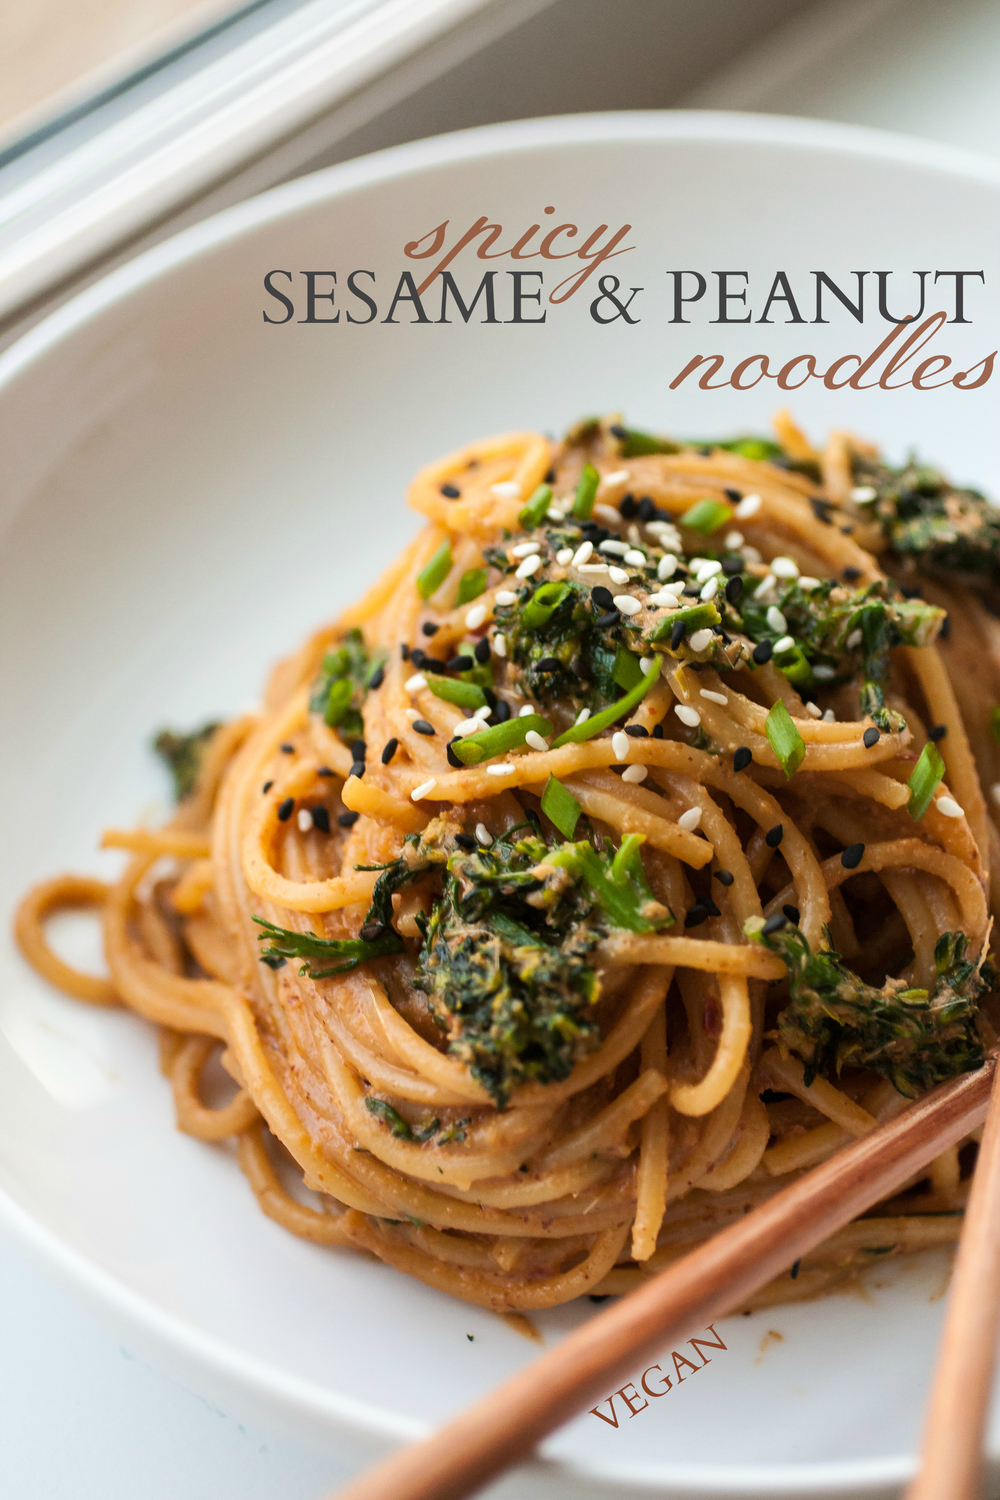 Spicy Sesame & Peanut Noodles (Produce On Parade) This is a scrumptious and speedy dish that only takes as long as the noodles to cook! A spicy and sweet creamy peanut butter and fragrant sesame blender sauce is tossed with chewy spaghetti noodles and fresh, parboiled broccoli rabe for a comforting meal. I hope this will be a new staple in your home, as it is in ours!